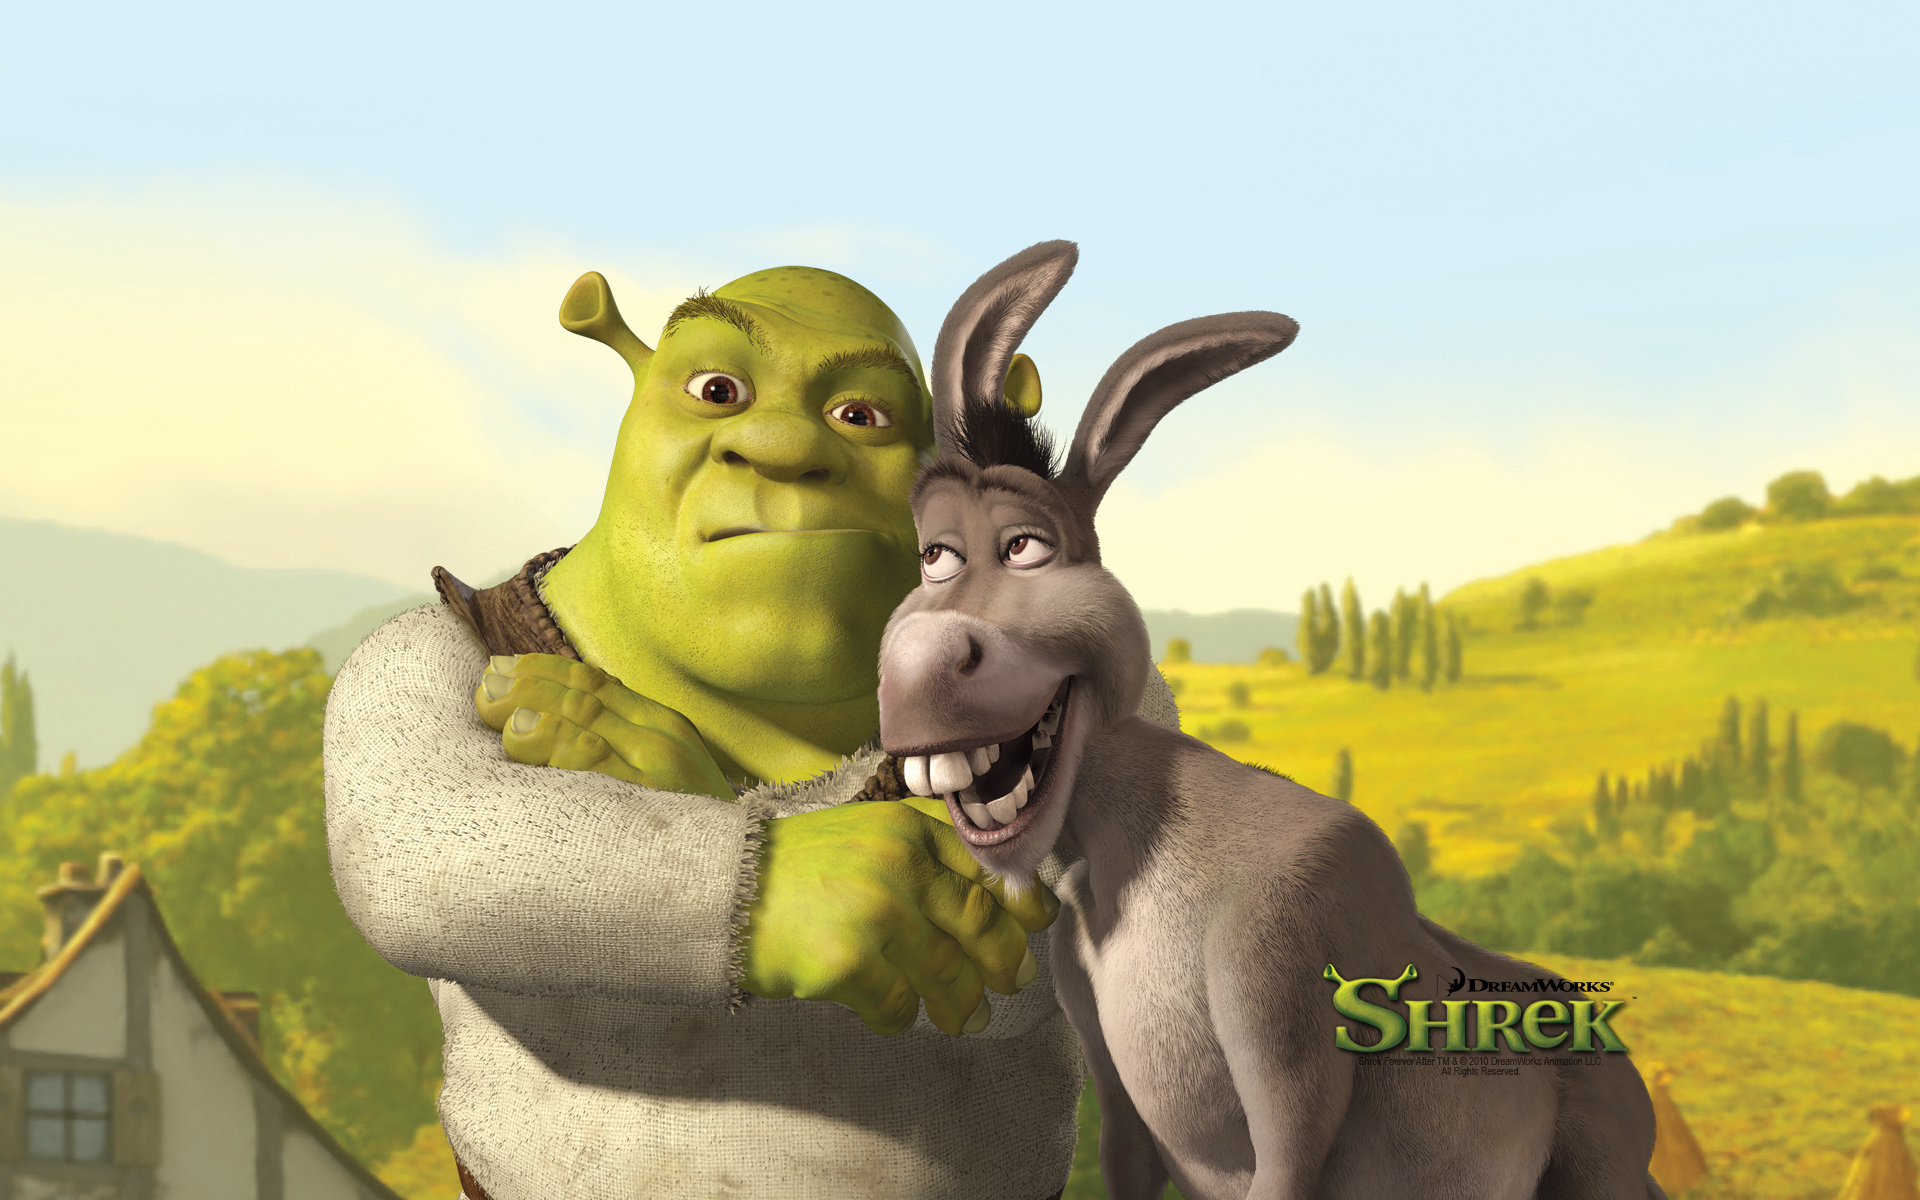 Shrek with friends shrek 30165391 1920 1200